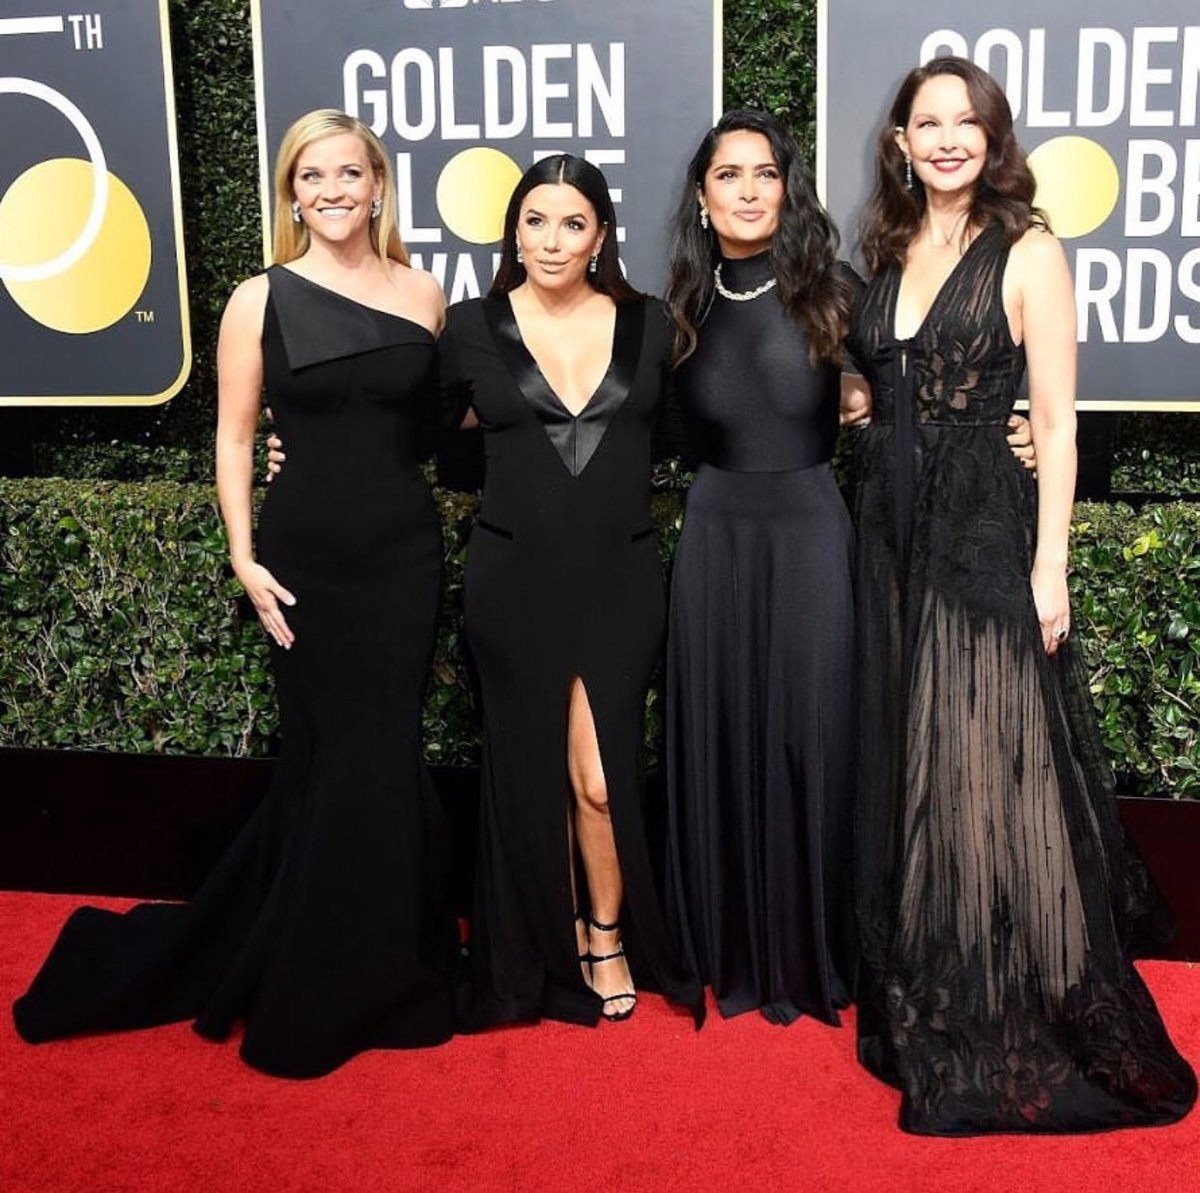 ???????? #TIMESUP #WhyWeWearBlack #GoldenGlobes2018 https://t.co/YnsaP1nOEo